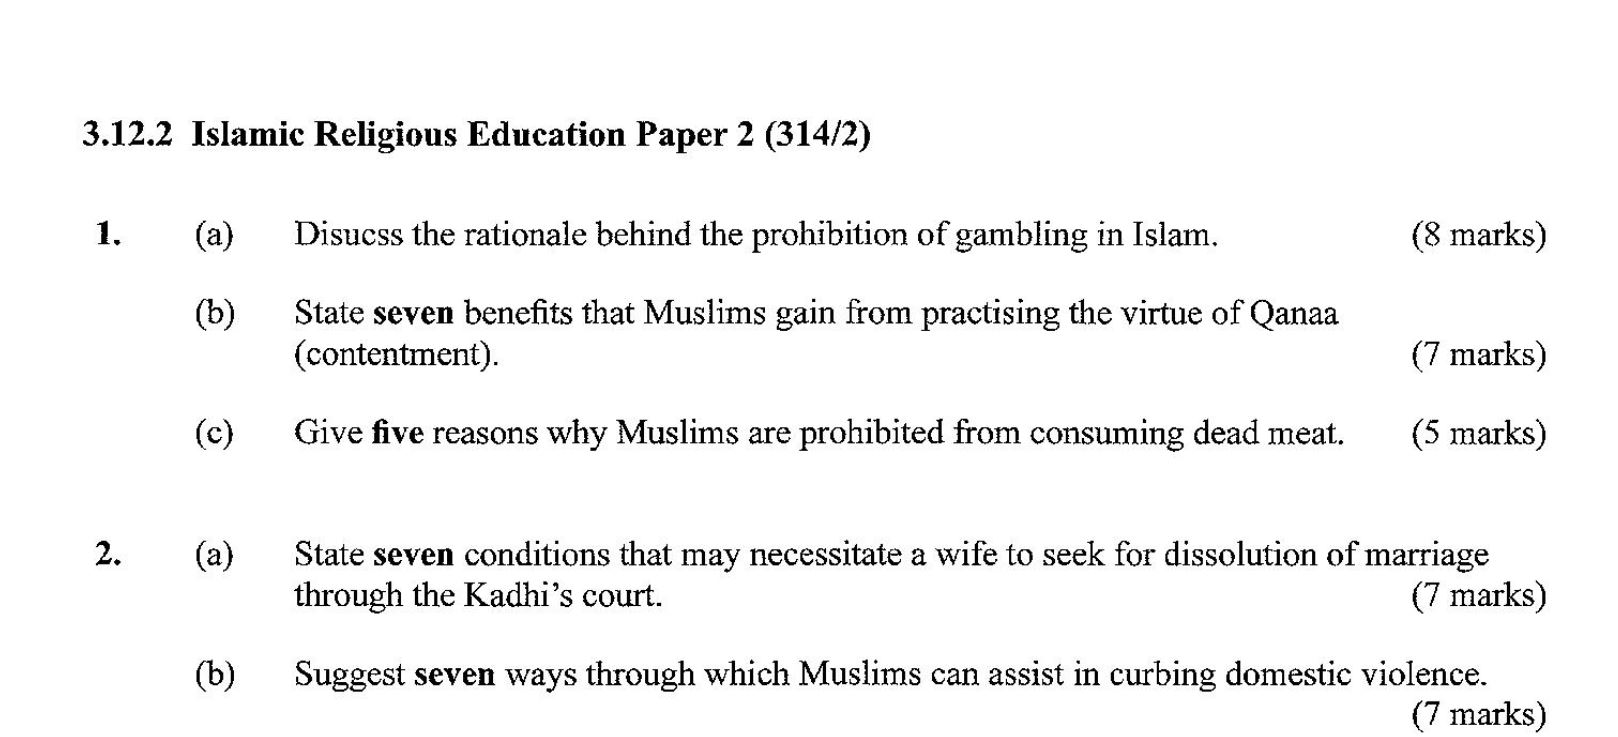 KCSE Islamic Paper 2, 2018 with Marking Scheme (Answers) - Muthurwa  Marketplace